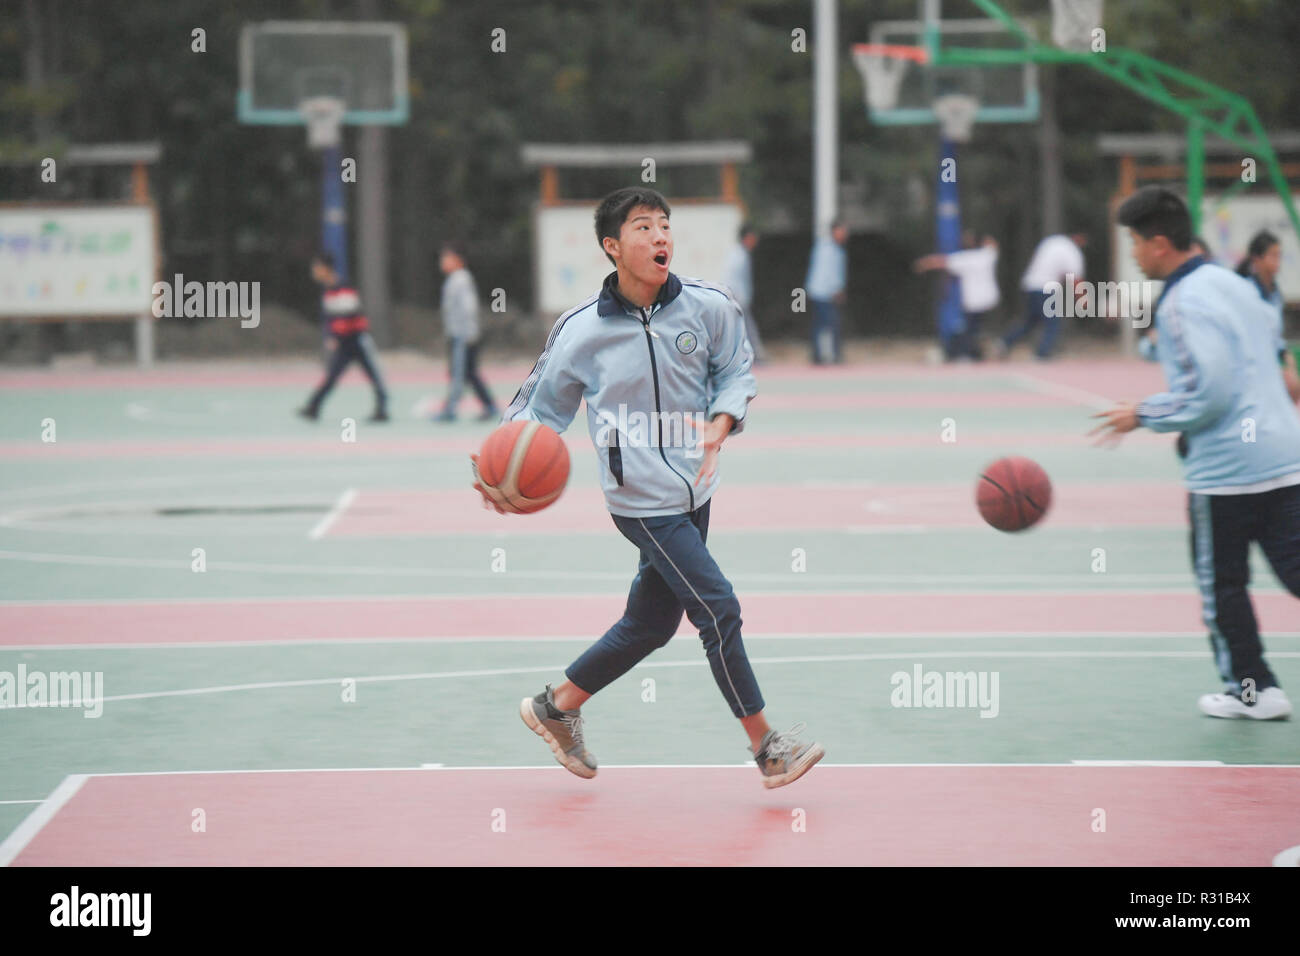 Shishi, China's Fujian Province. 20th Nov, 2018. Students attend basketball class at Jinfeng experimental school at Shishi City, southeast China's Fujian Province, Nov. 20, 2018. More than 40 schools provide extracurricular training for students whose parents are still at work when school is over in Shishi. Credit: Song Weiwei/Xinhua/Alamy Live News - Stock Image